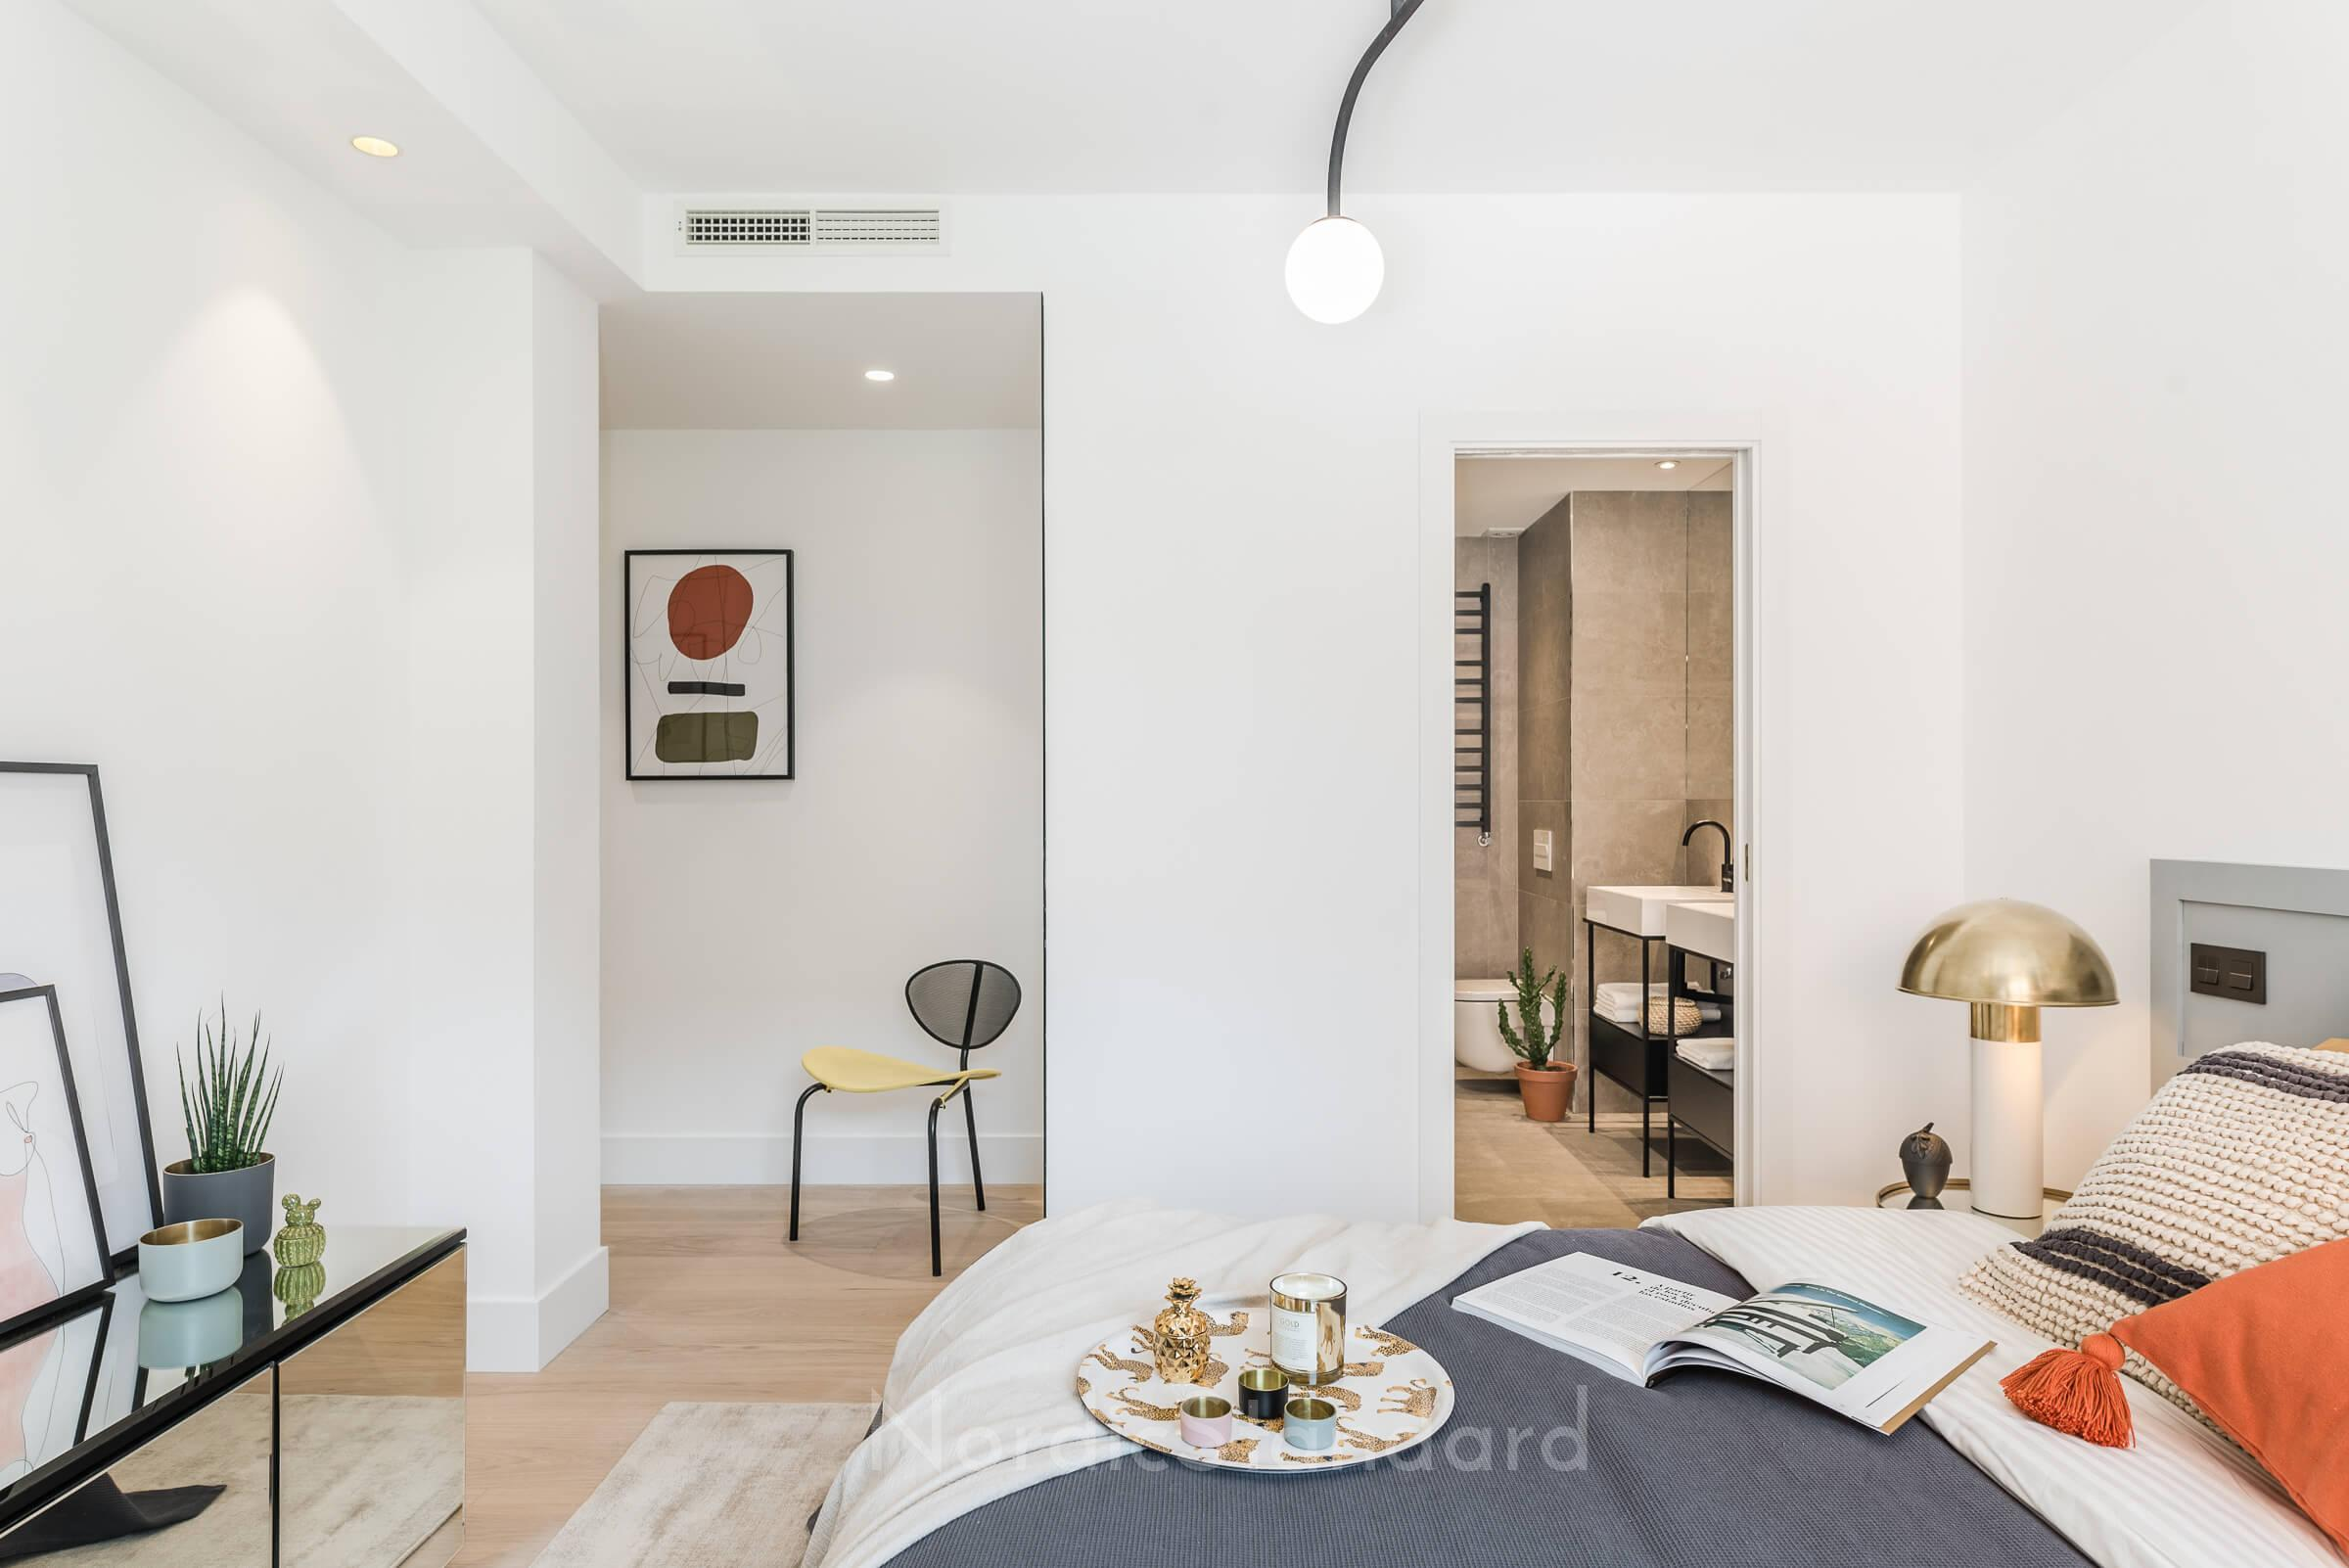 Stil contemporan cu influențe scandinave într-un apartament din Madrid 19